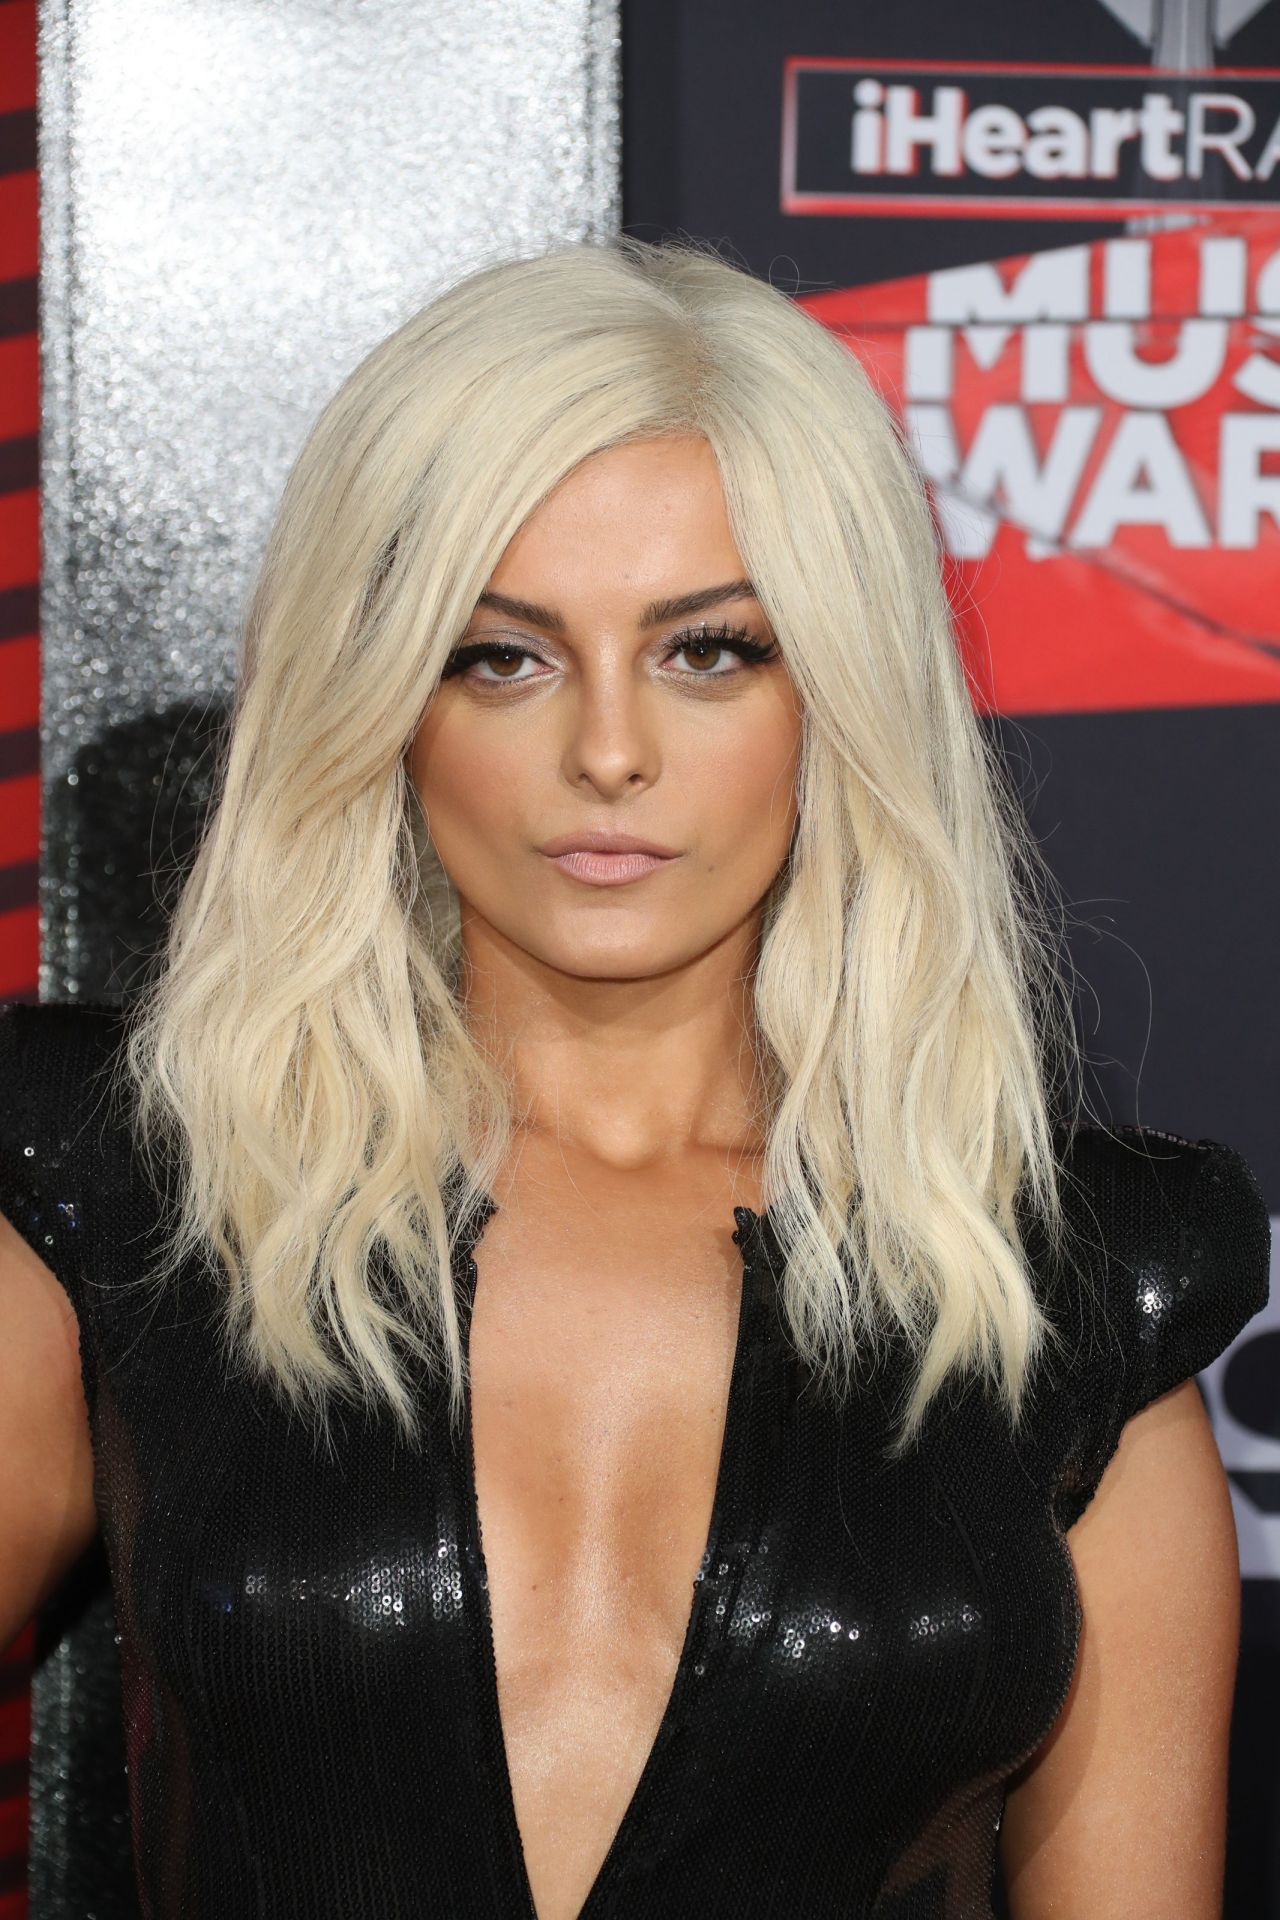 Bebe Rexha Iheartradio Music Awards Los Angeles 35 2017 712427